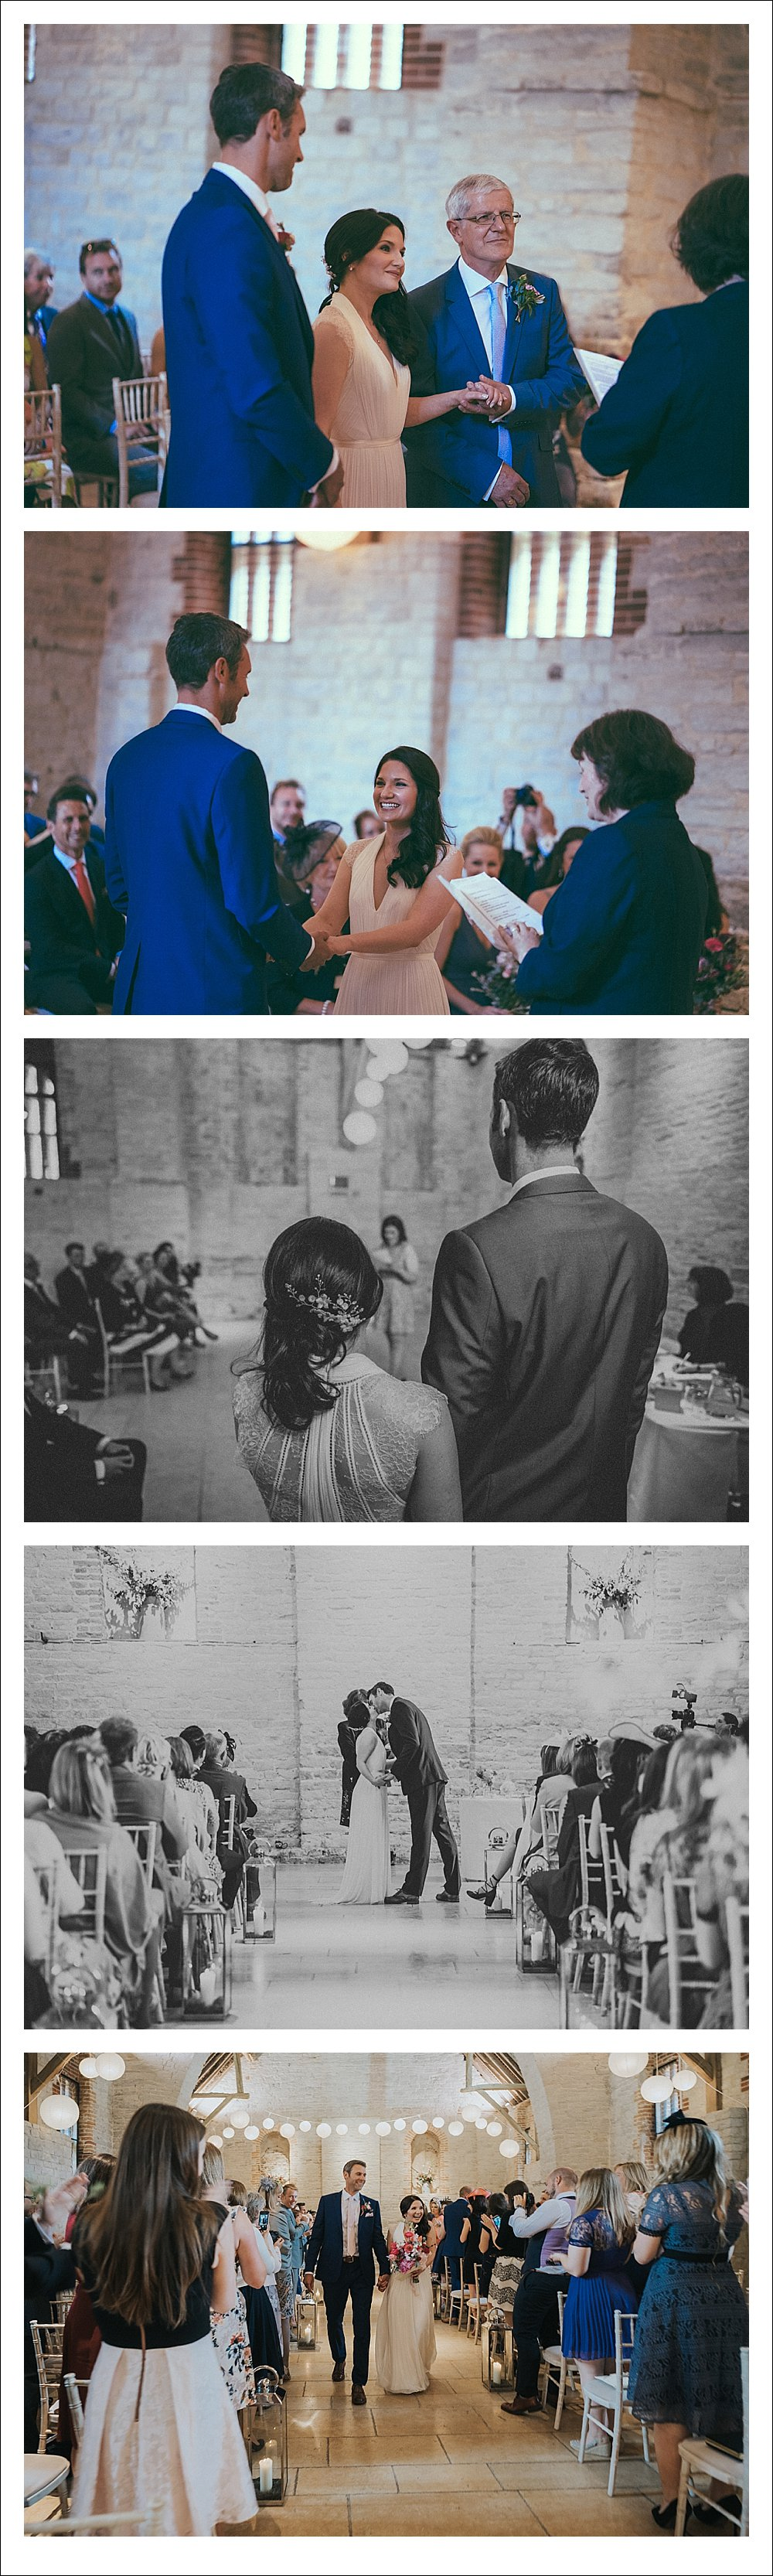 Bride & Groom Photography Tithe Barn Wedding